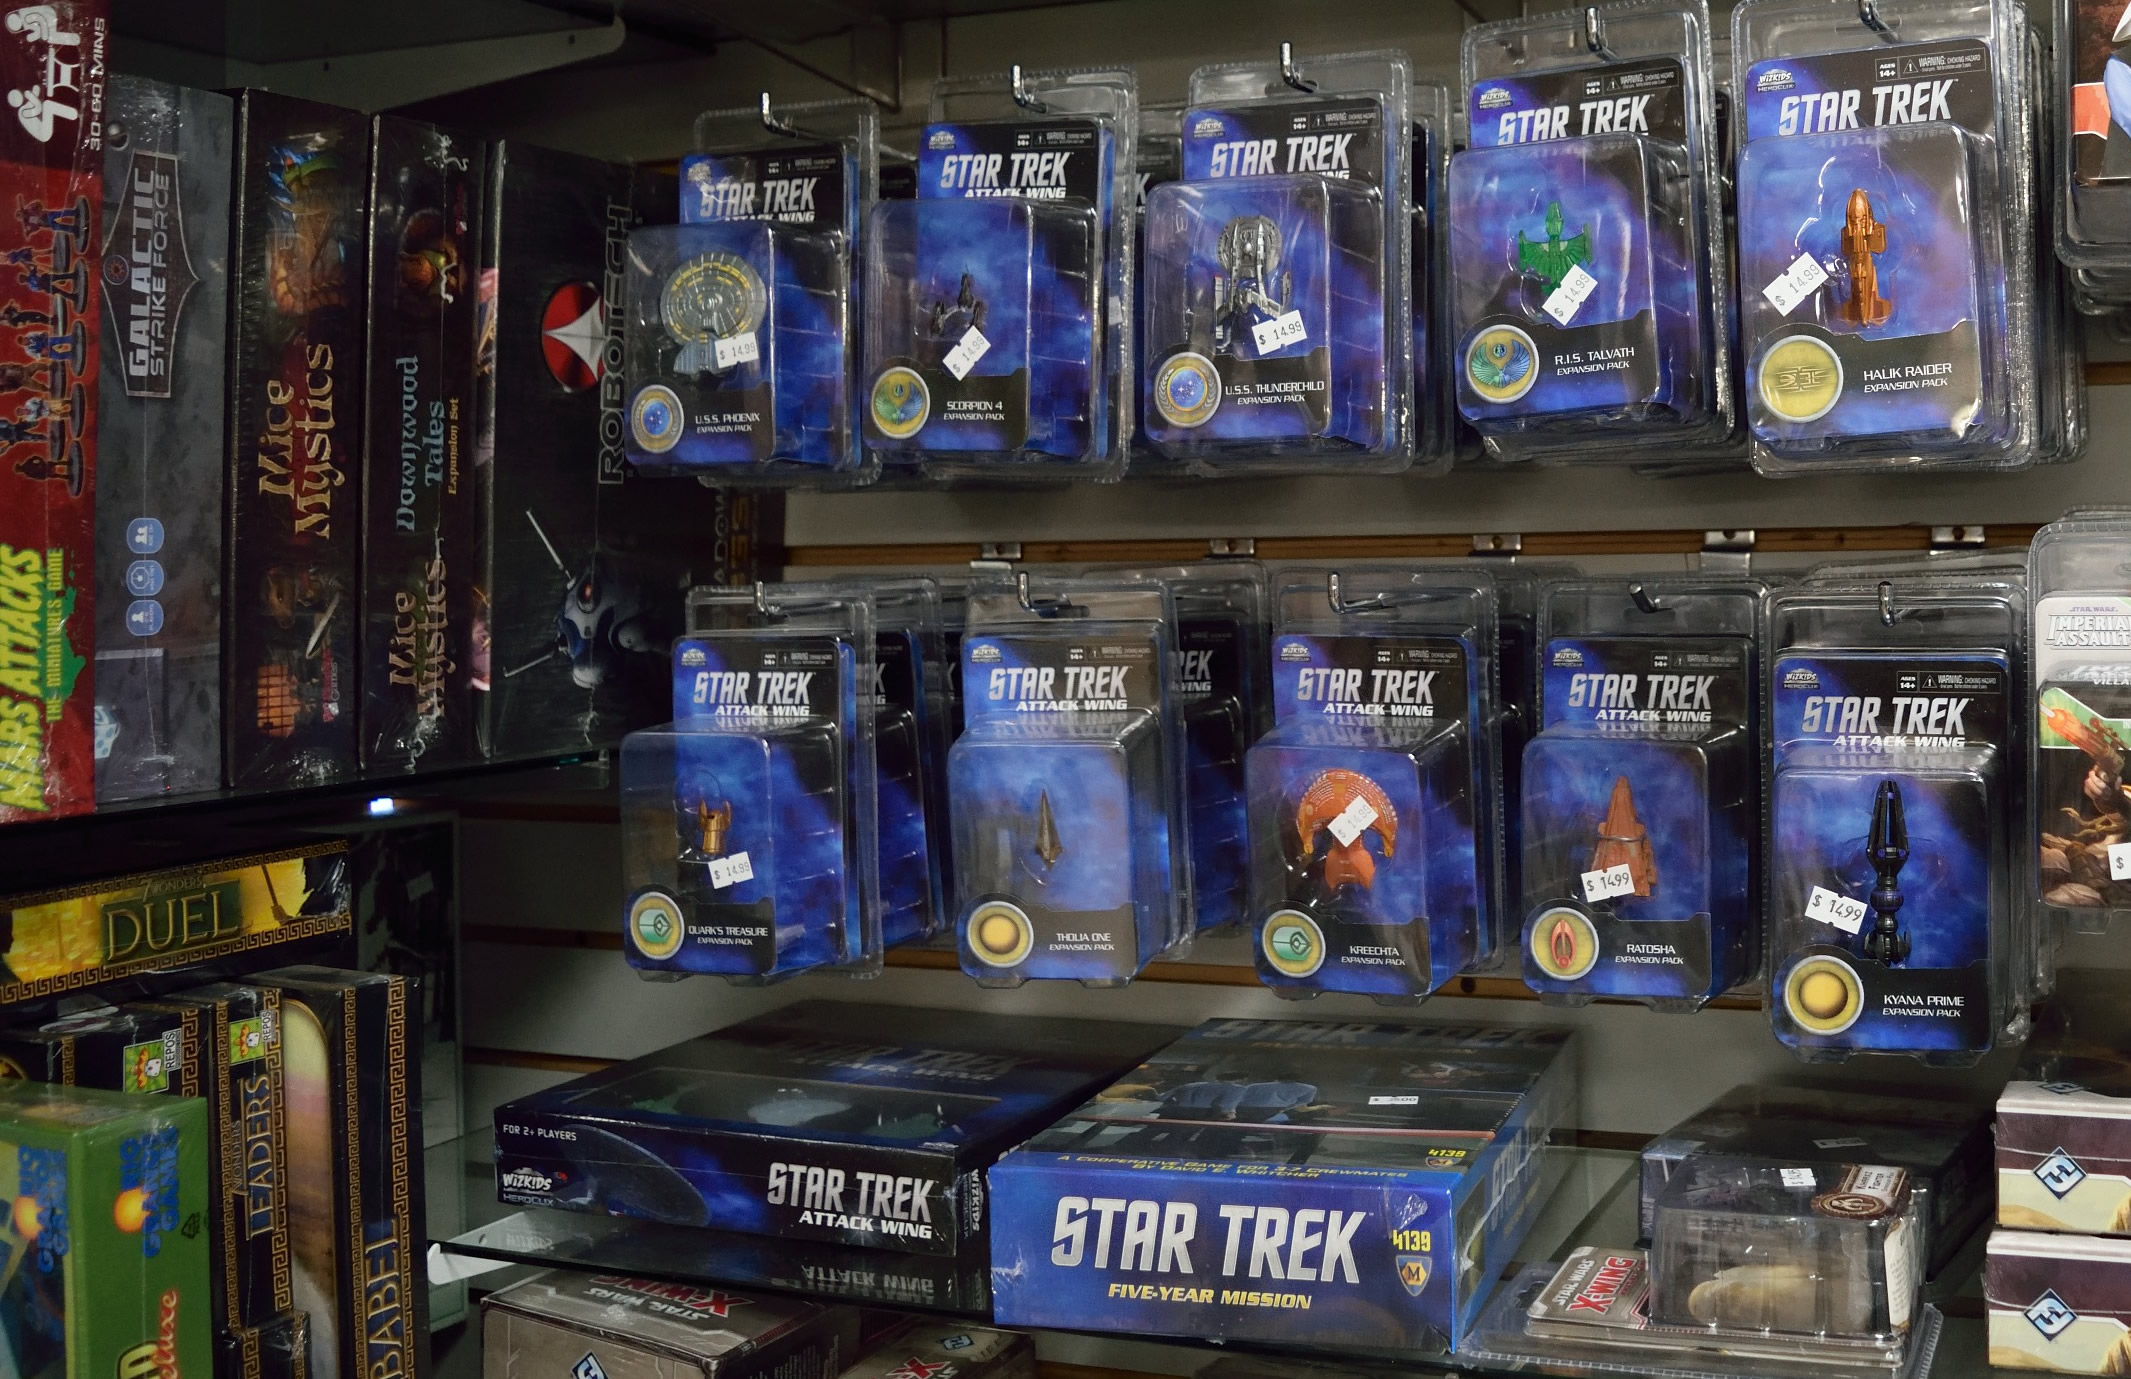 star_trek_figures.jpg